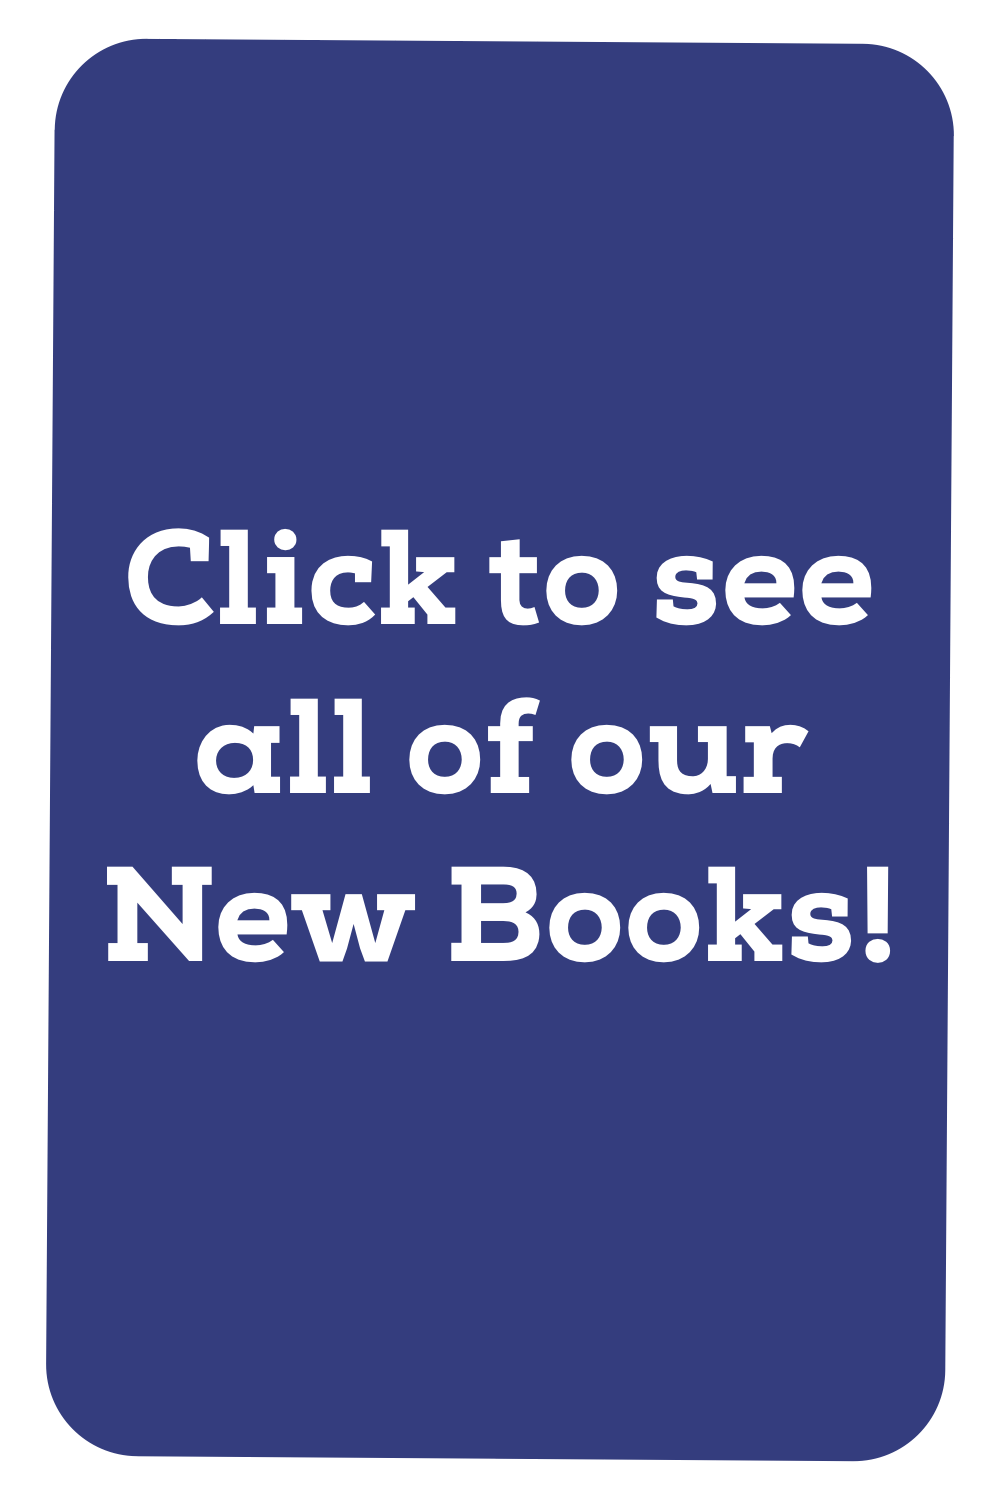 Click to see all of our New Books